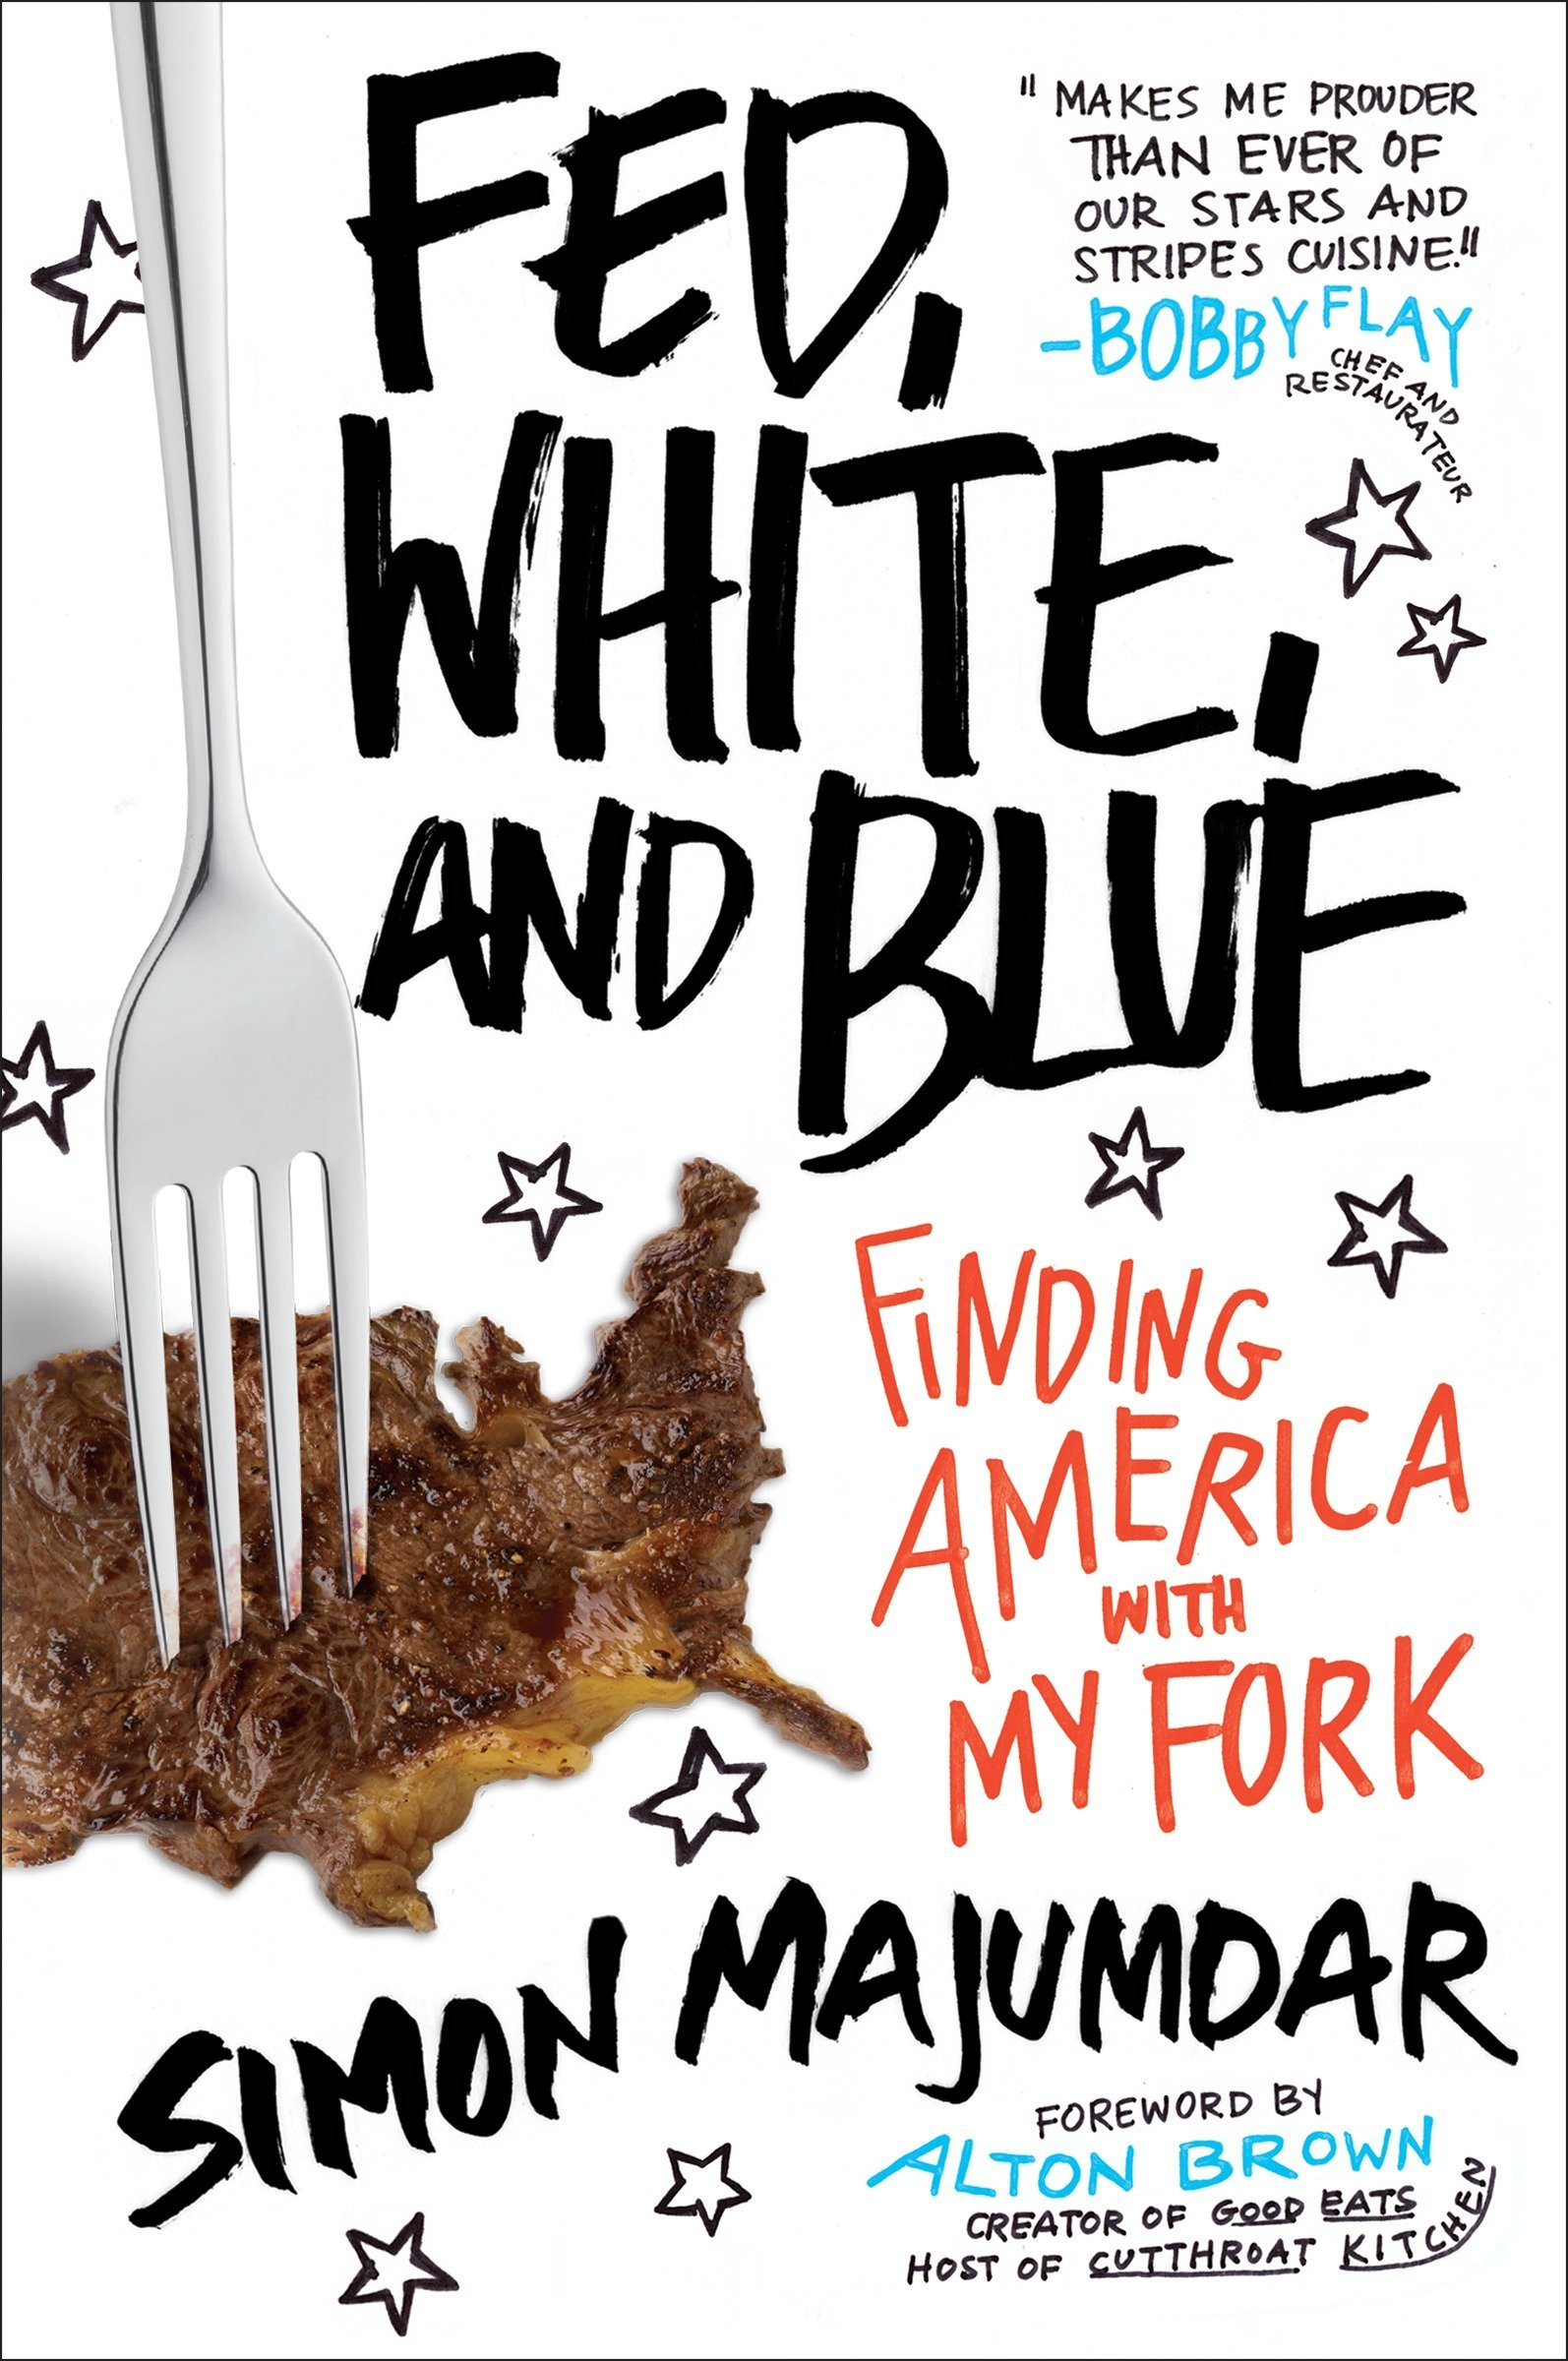 Fed, White, and Blue: Finding America with My Fork: Simon Majumdar ...